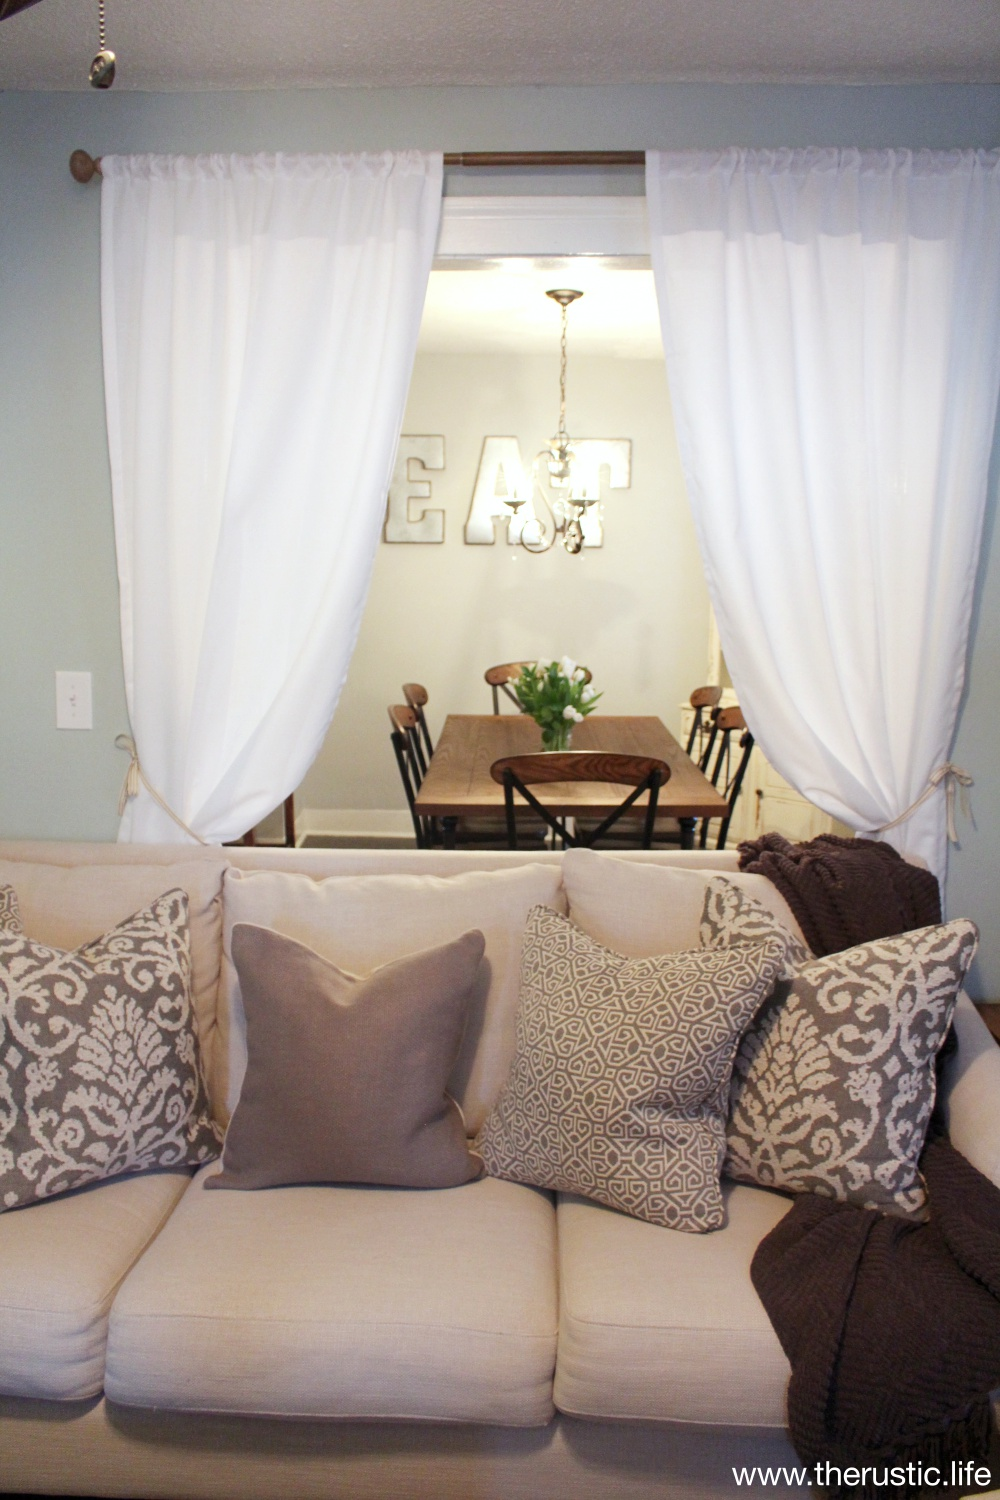 Makeover Reveal for Home for the Holidays with Raymour and